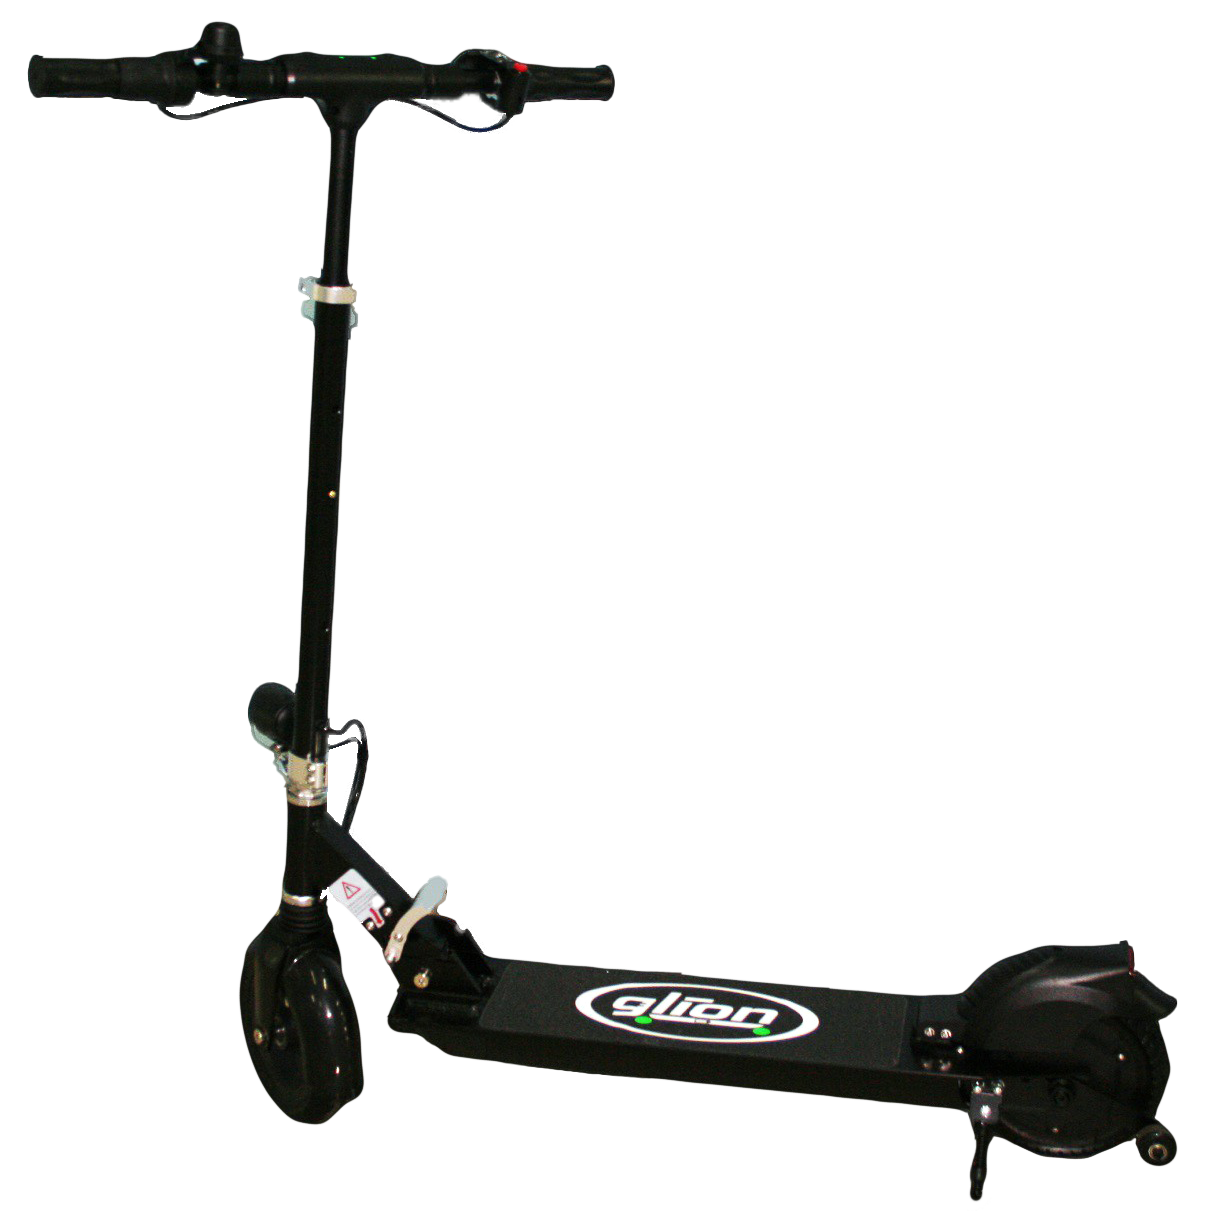 Glion Electric Scooter